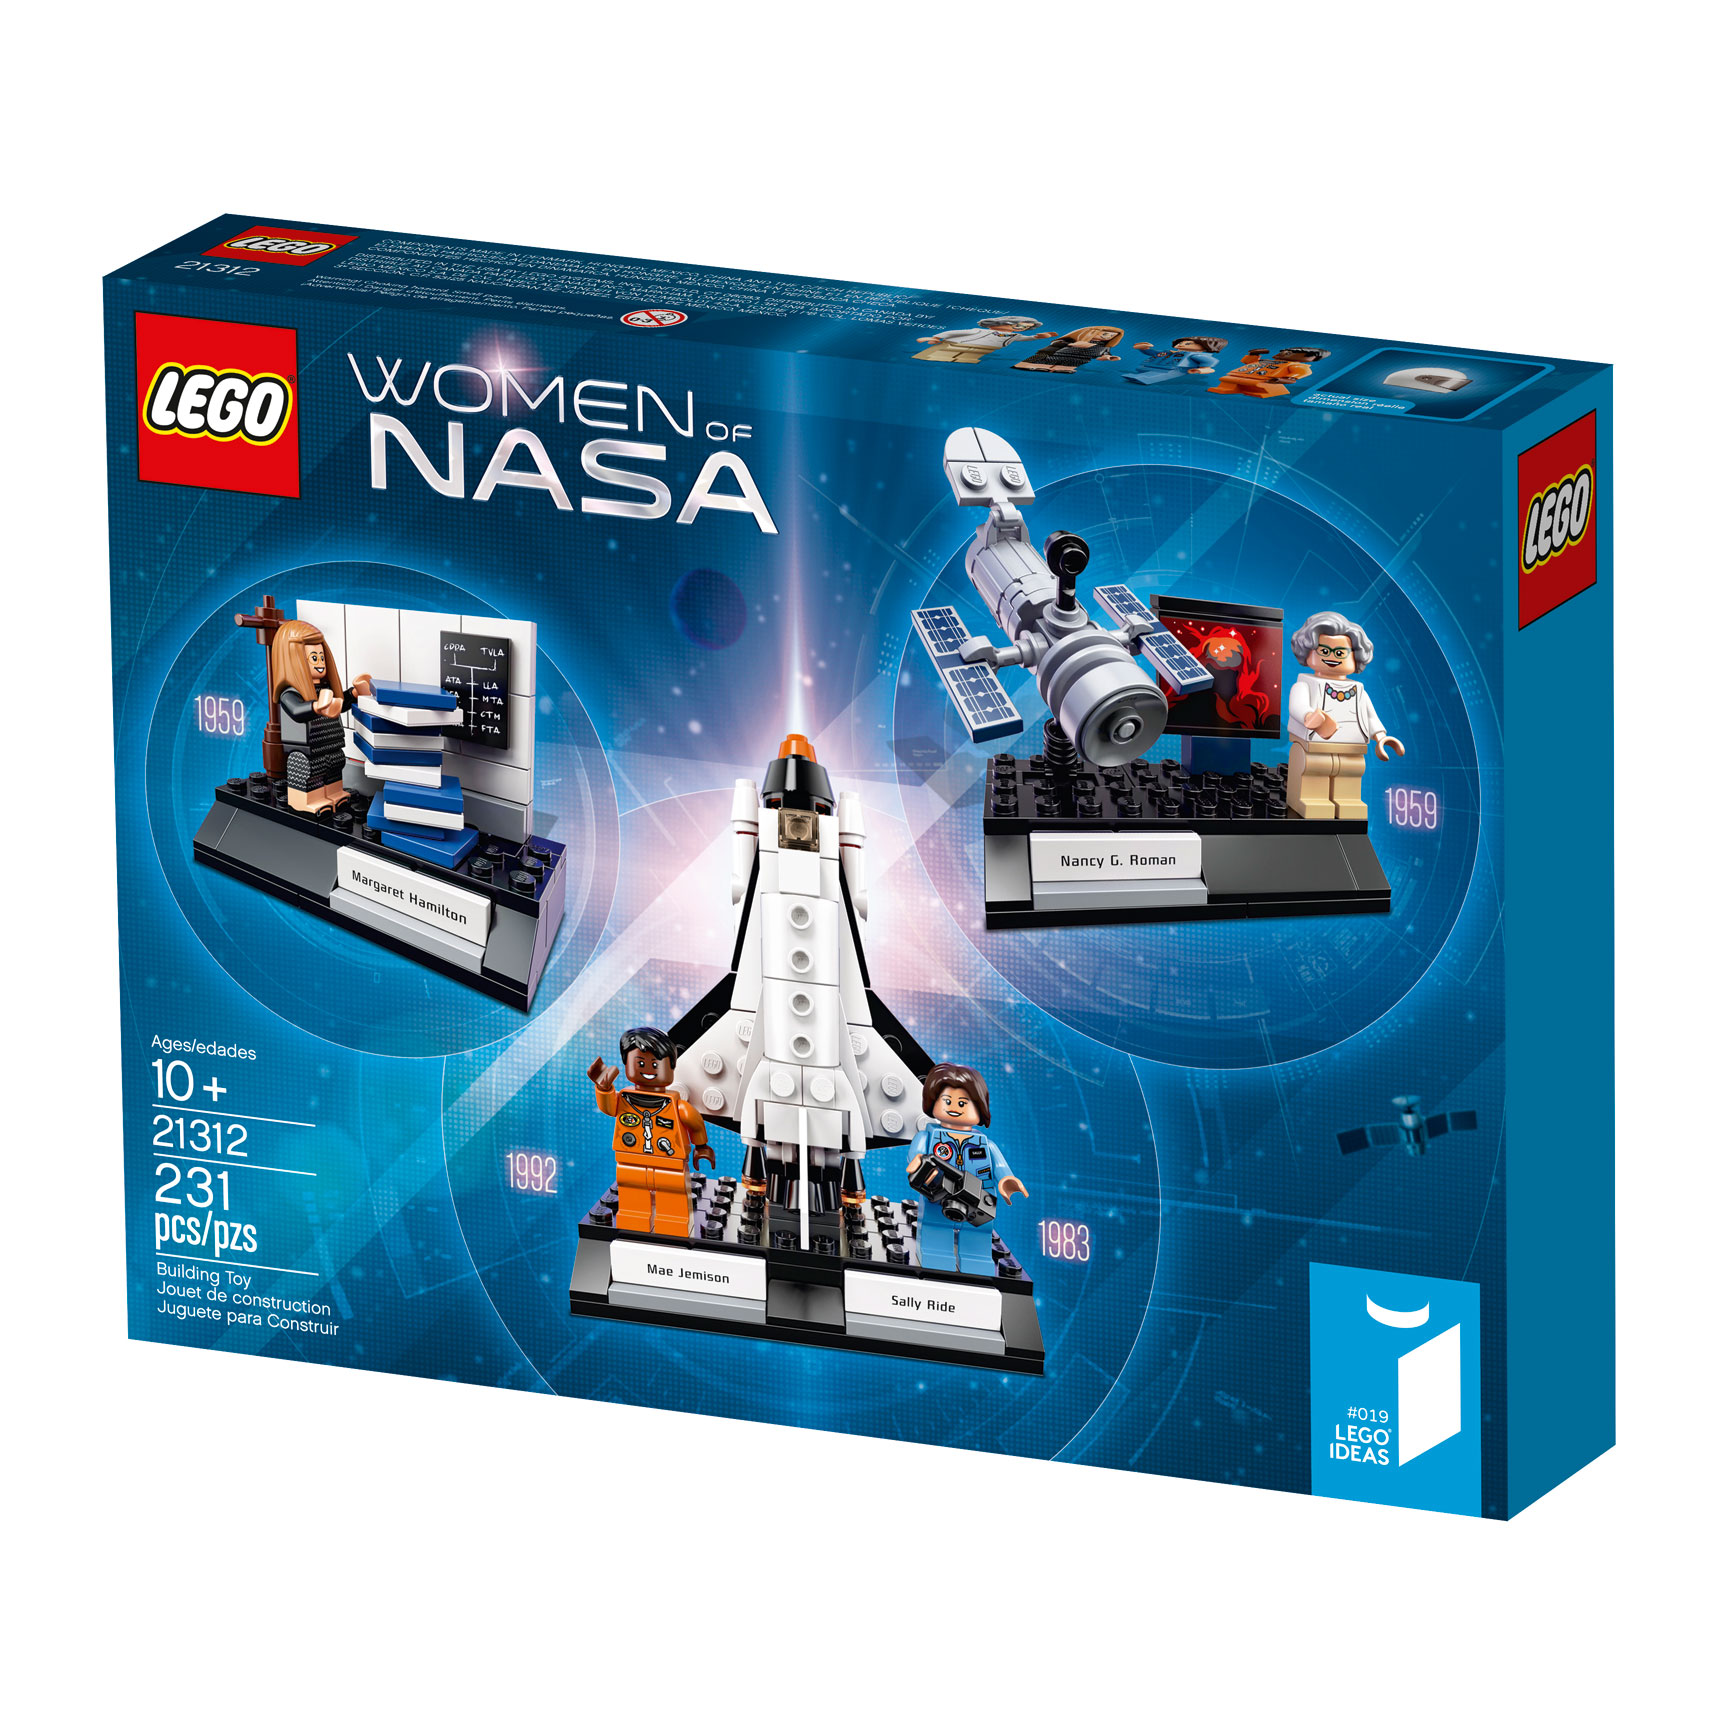 21312 Women of NASA 1-to-1